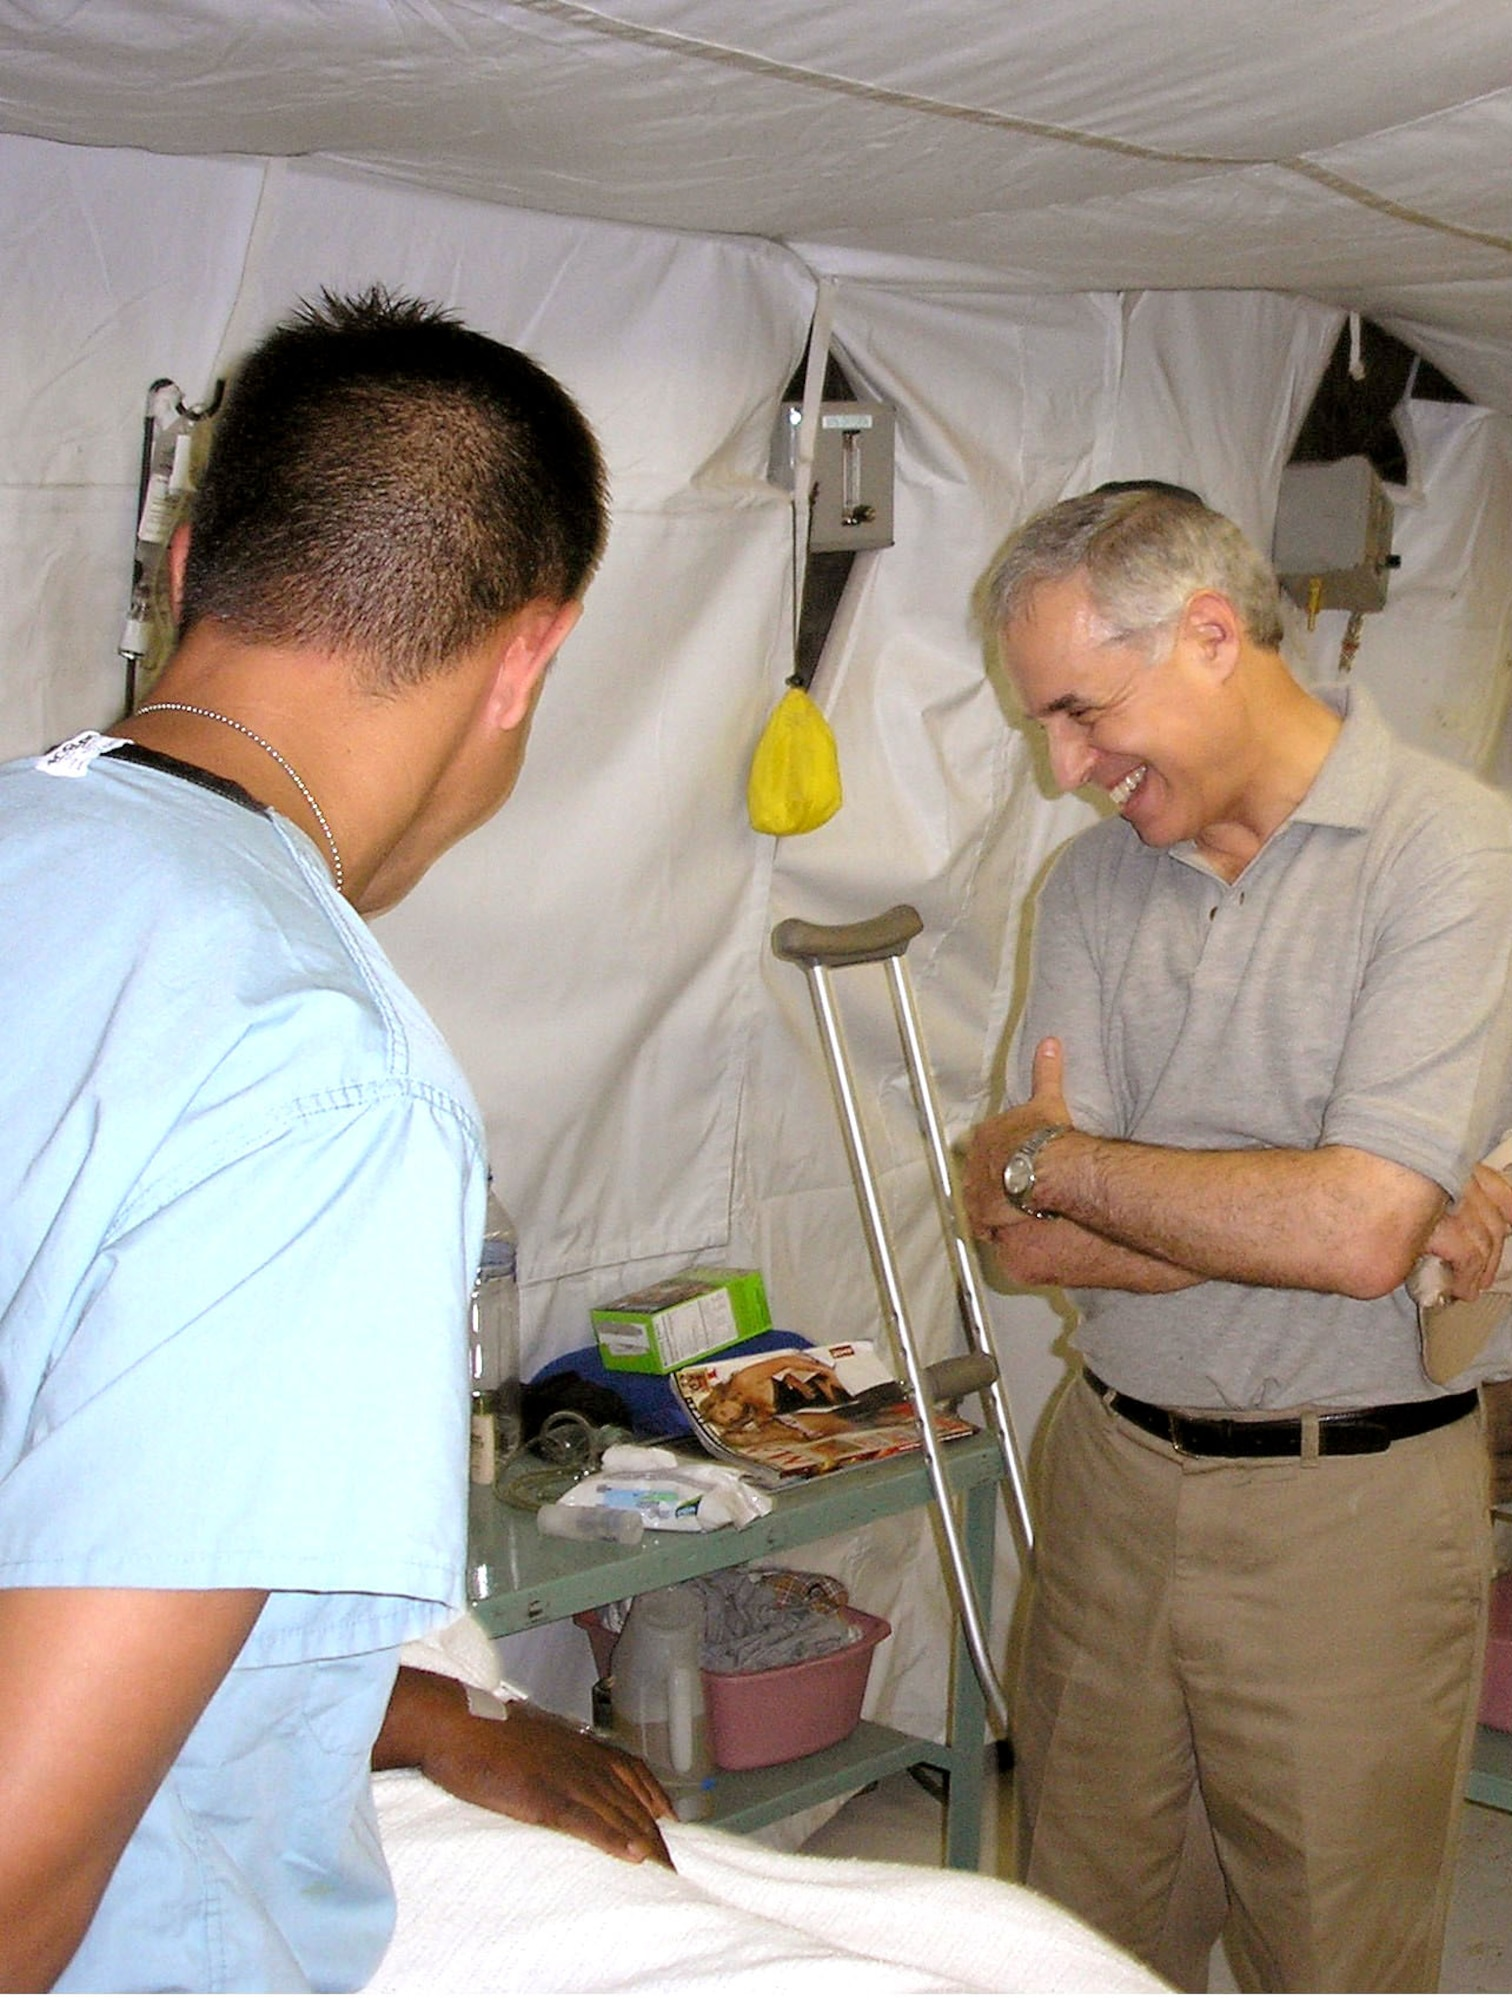 BALAD AIR BASE, Iraq -- Rabbi Arnold E. Resnicoff shares a light moment with a patient during his visit here at the Air Force Theater Hospital. (U.S. Air Force photo)